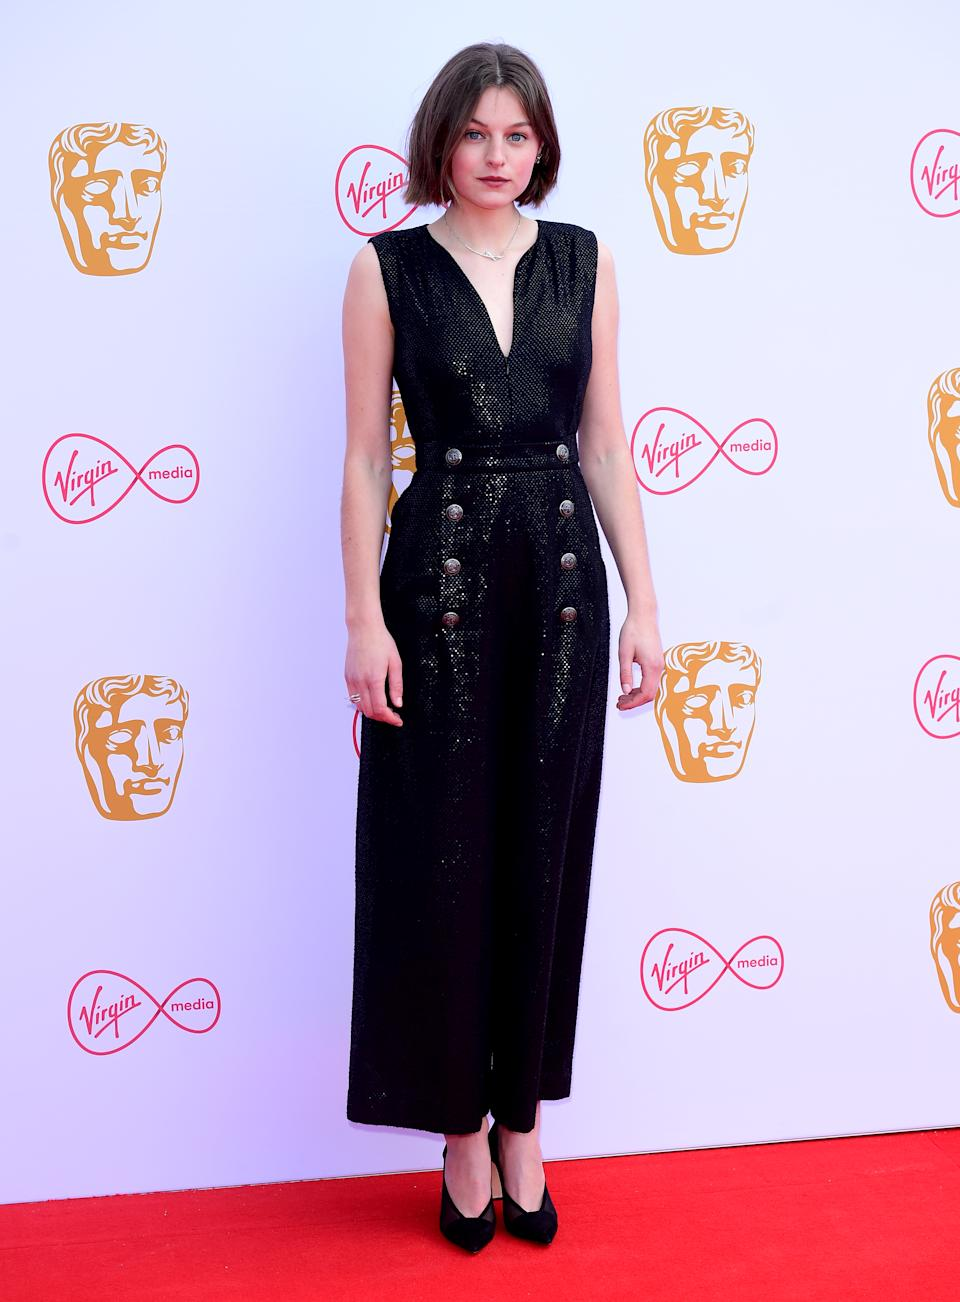 El 12 de mayo de 2019 desfiló por la alfombra roja de los Virgin Media BAFTA TV Awards con un <em>total black look</em>. Aunque su Chanel no era fácil de llevar, Corrin lo defendió con mucho estilo. (Foto: Ian West / PA Images via Getty Images)